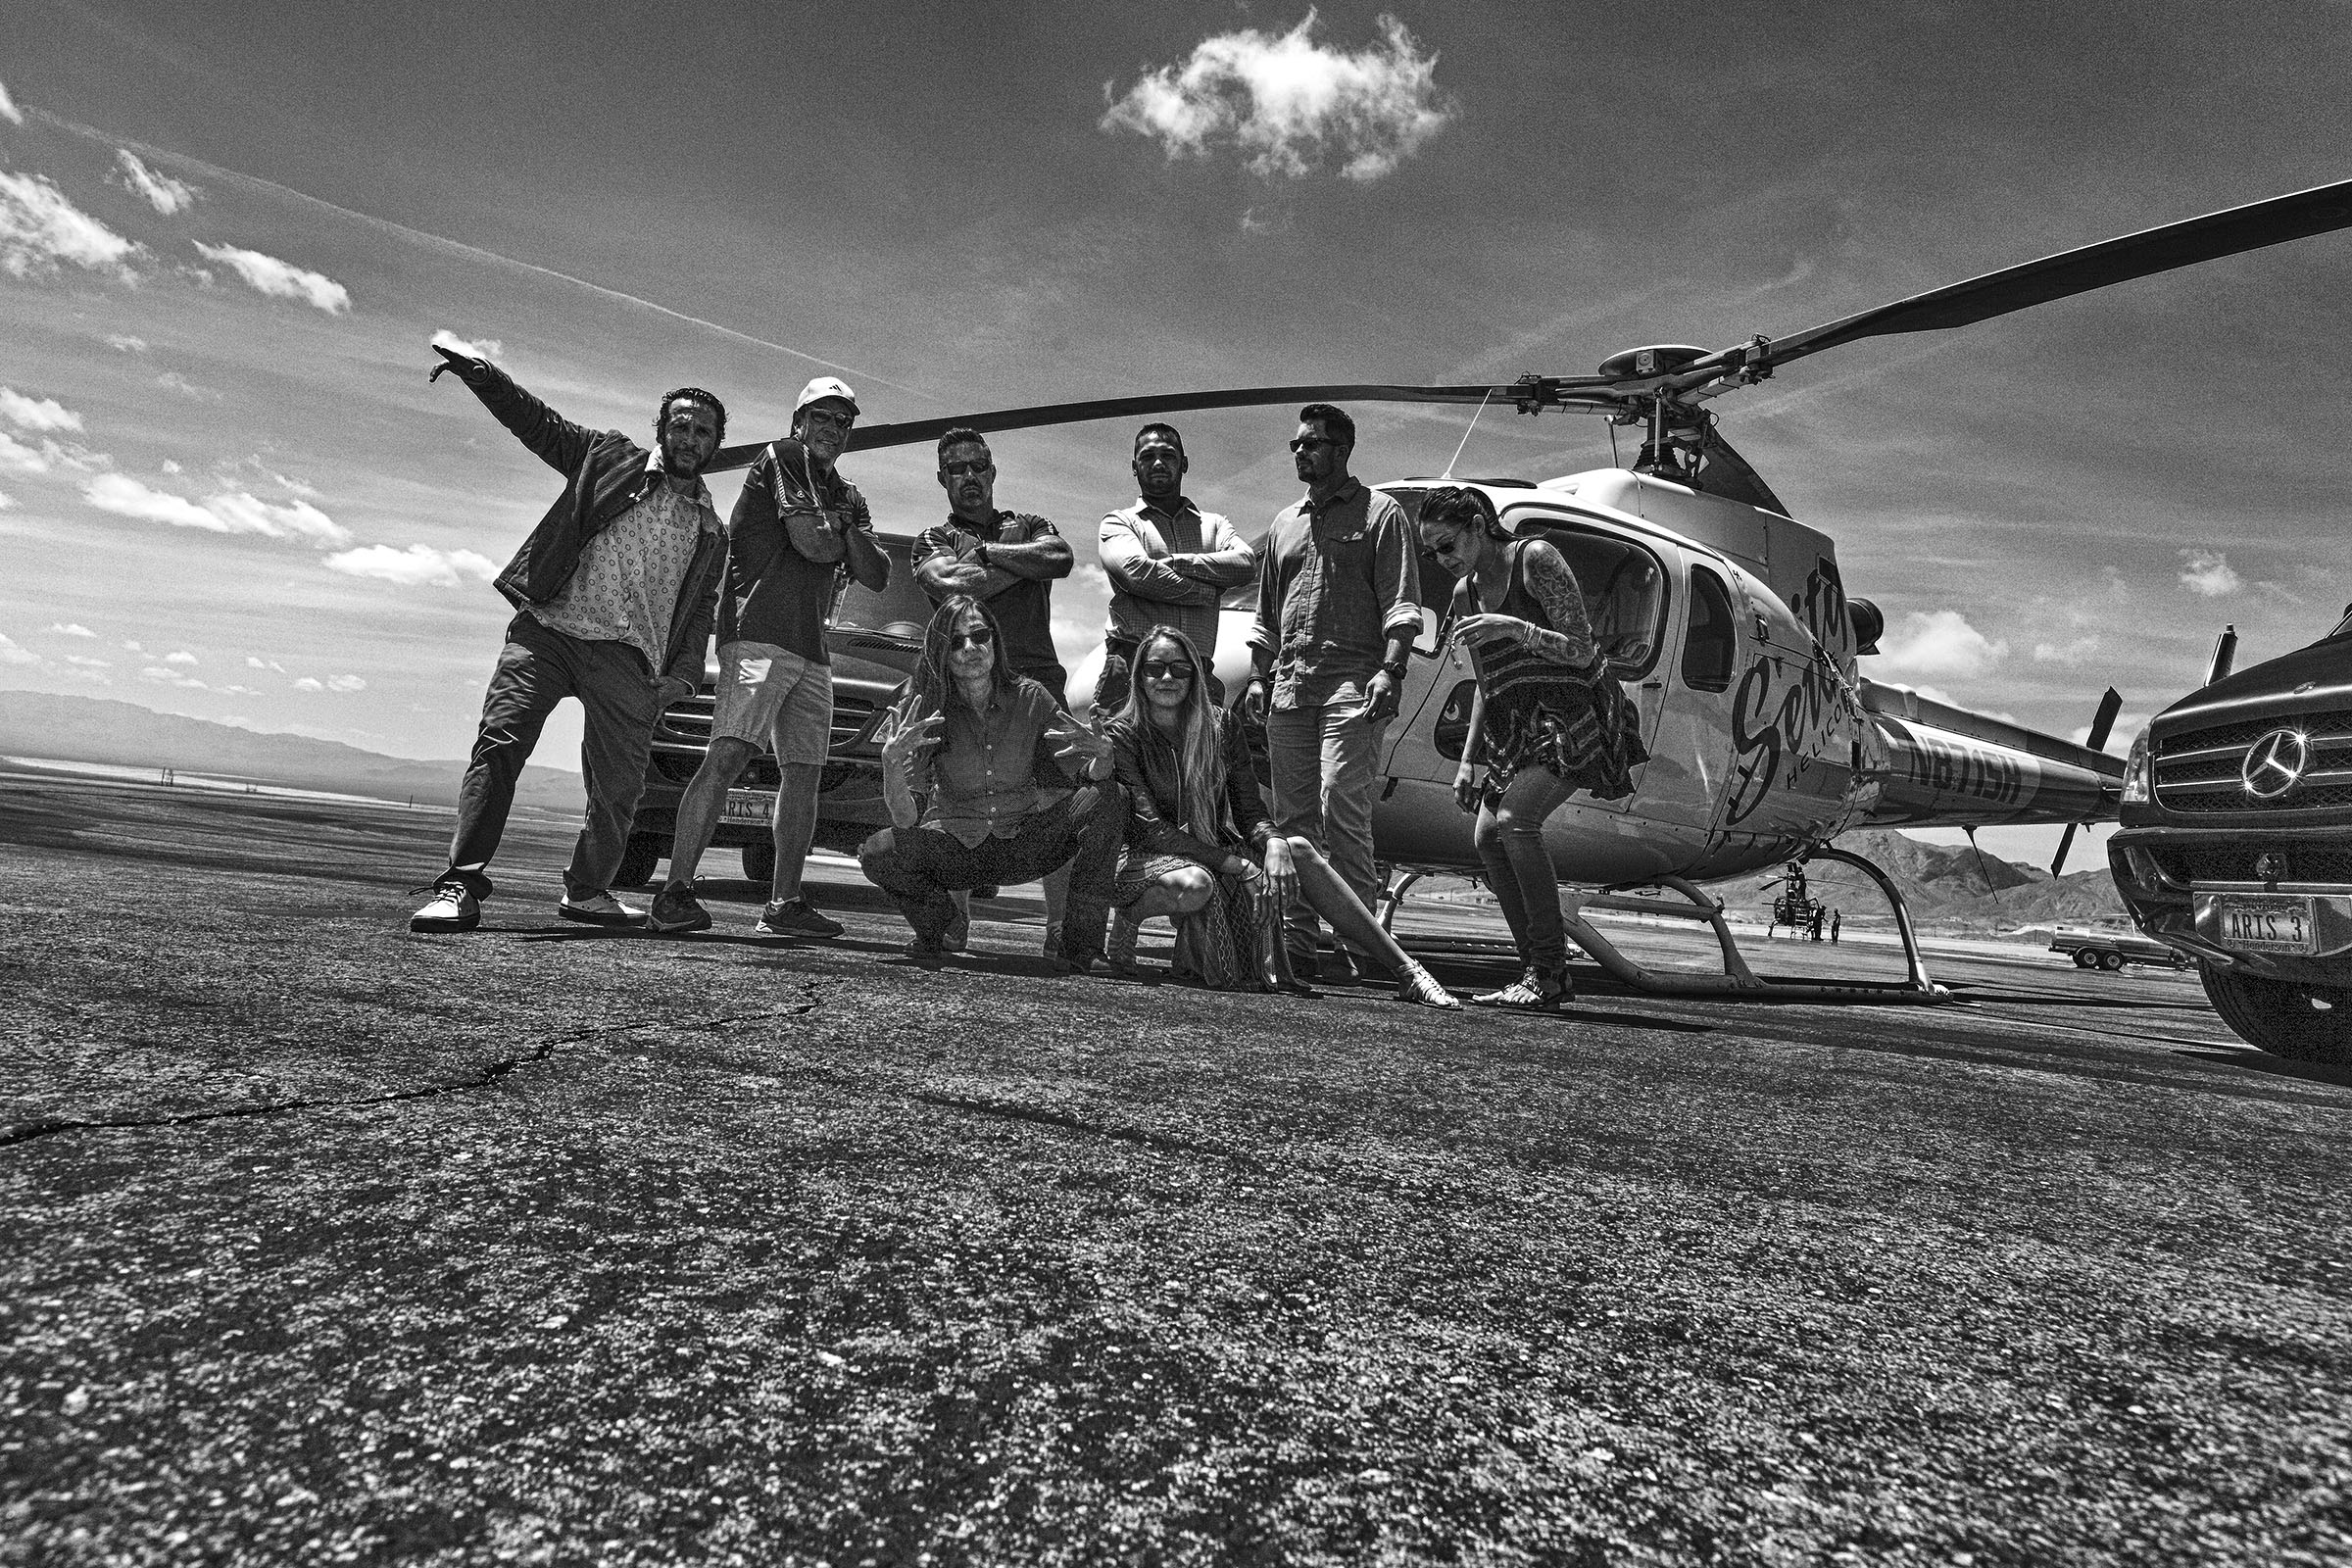 Serenity Helicopters Grand Canyon Boulder City Airport The Crew Team Wick Beavers